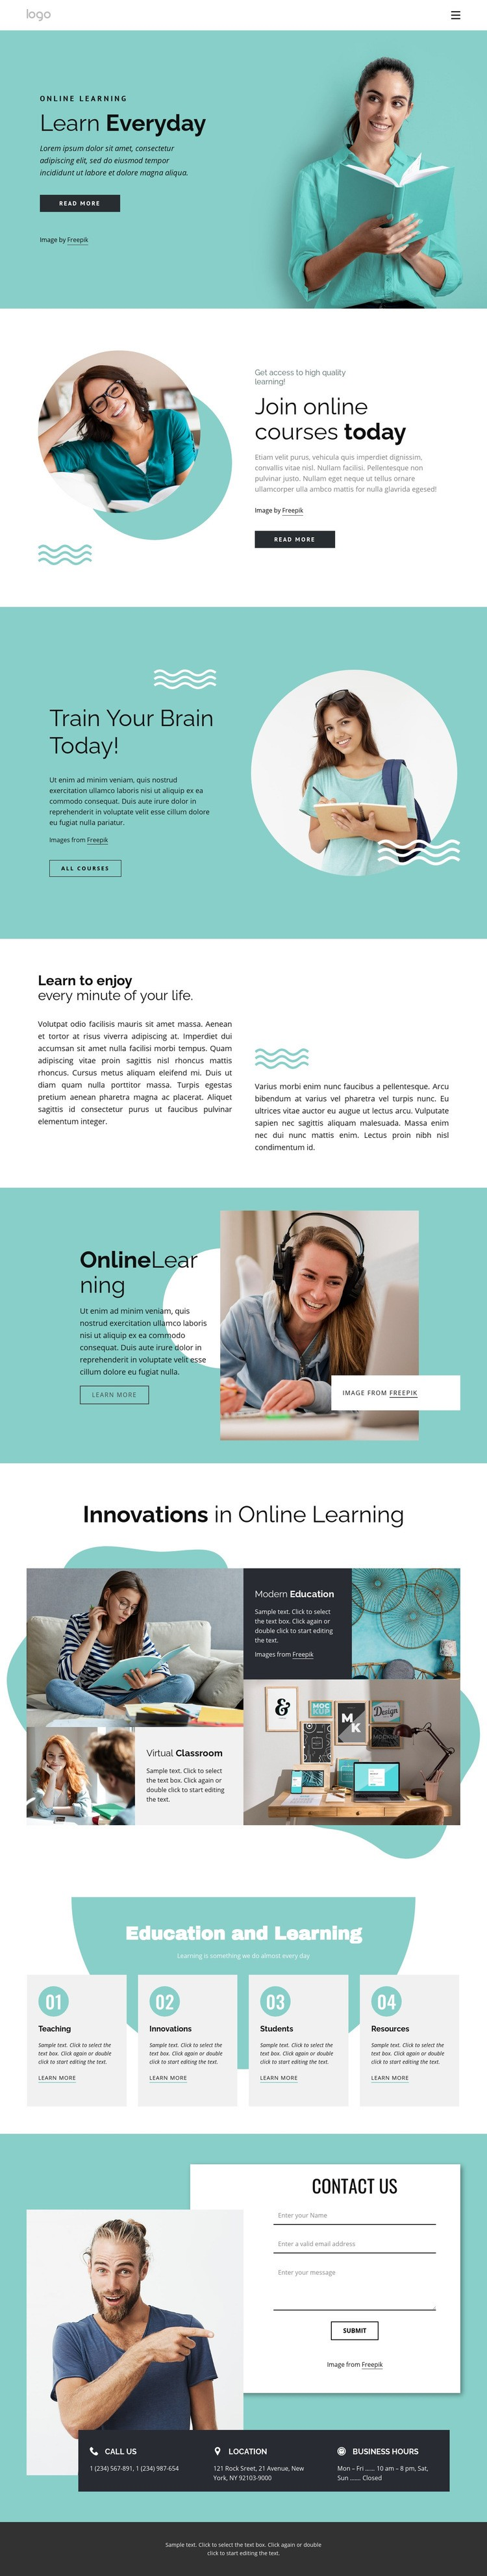 Learning is a lifelong process Homepage Design